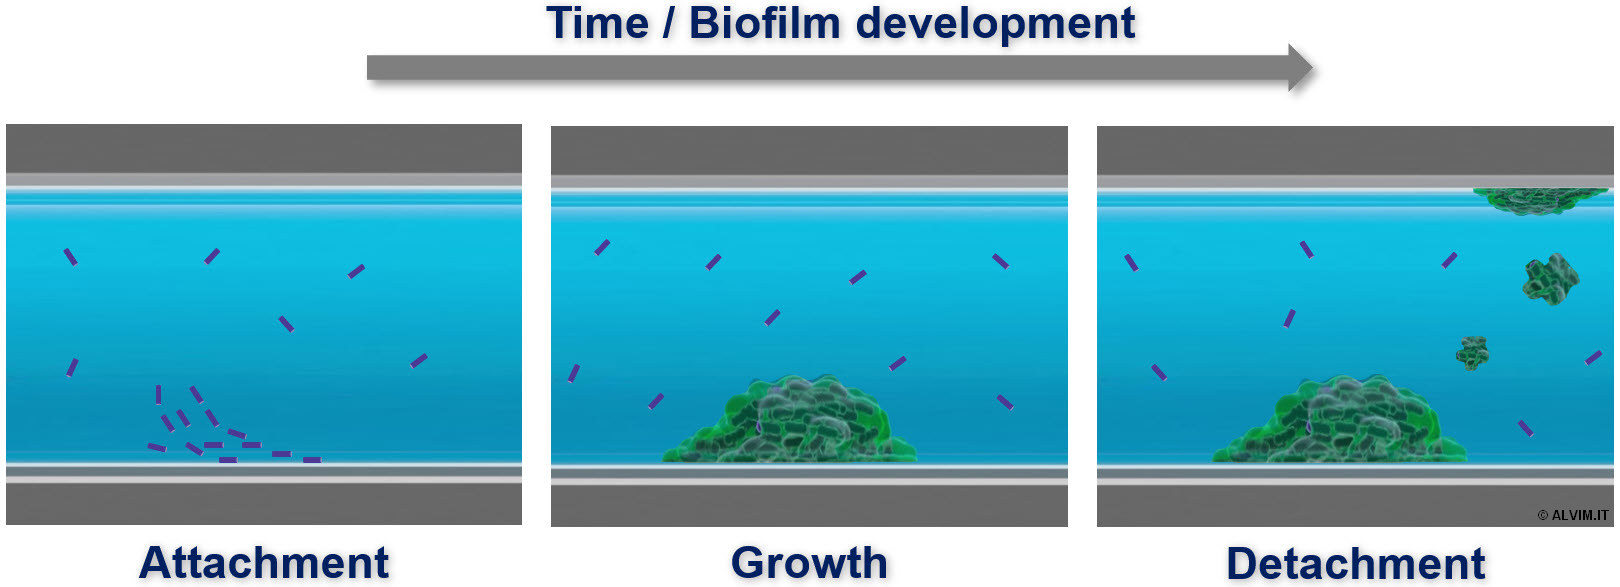 Formation and development of biofilm with time